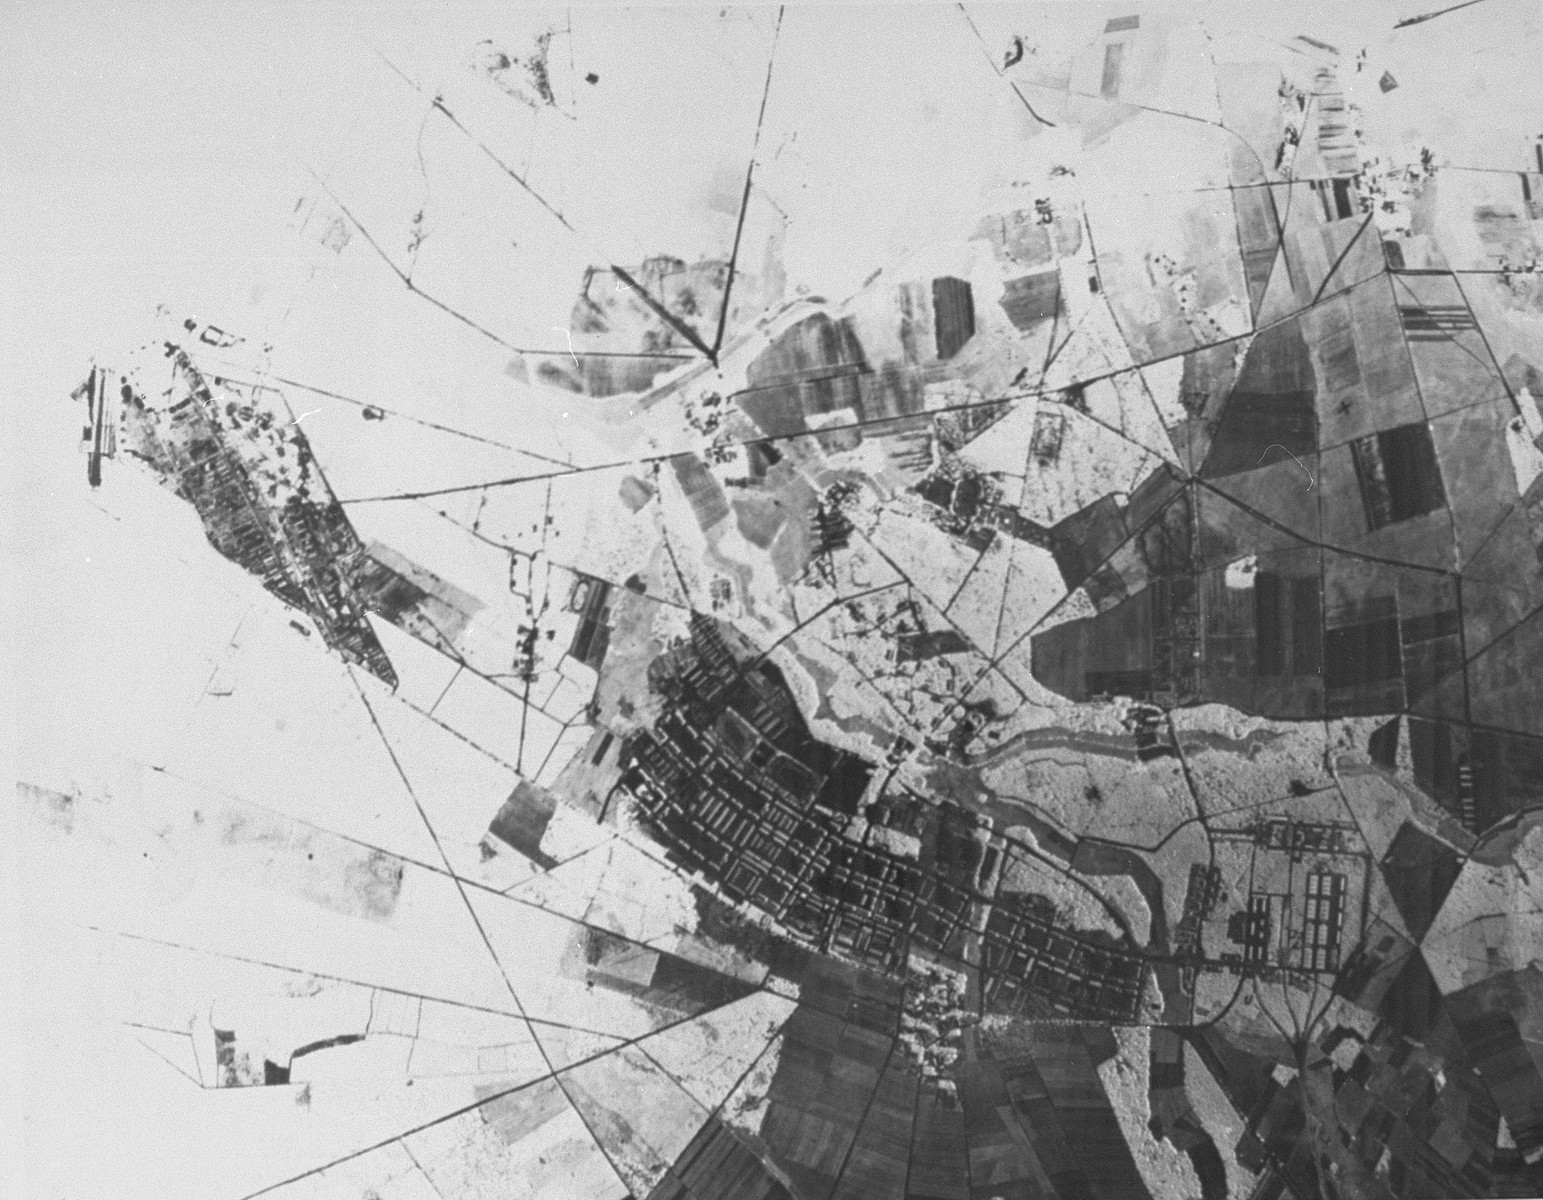 Aerial reconnaissance photograph of the Bergen-Belsen concentration camp area showing the village of Bergen.